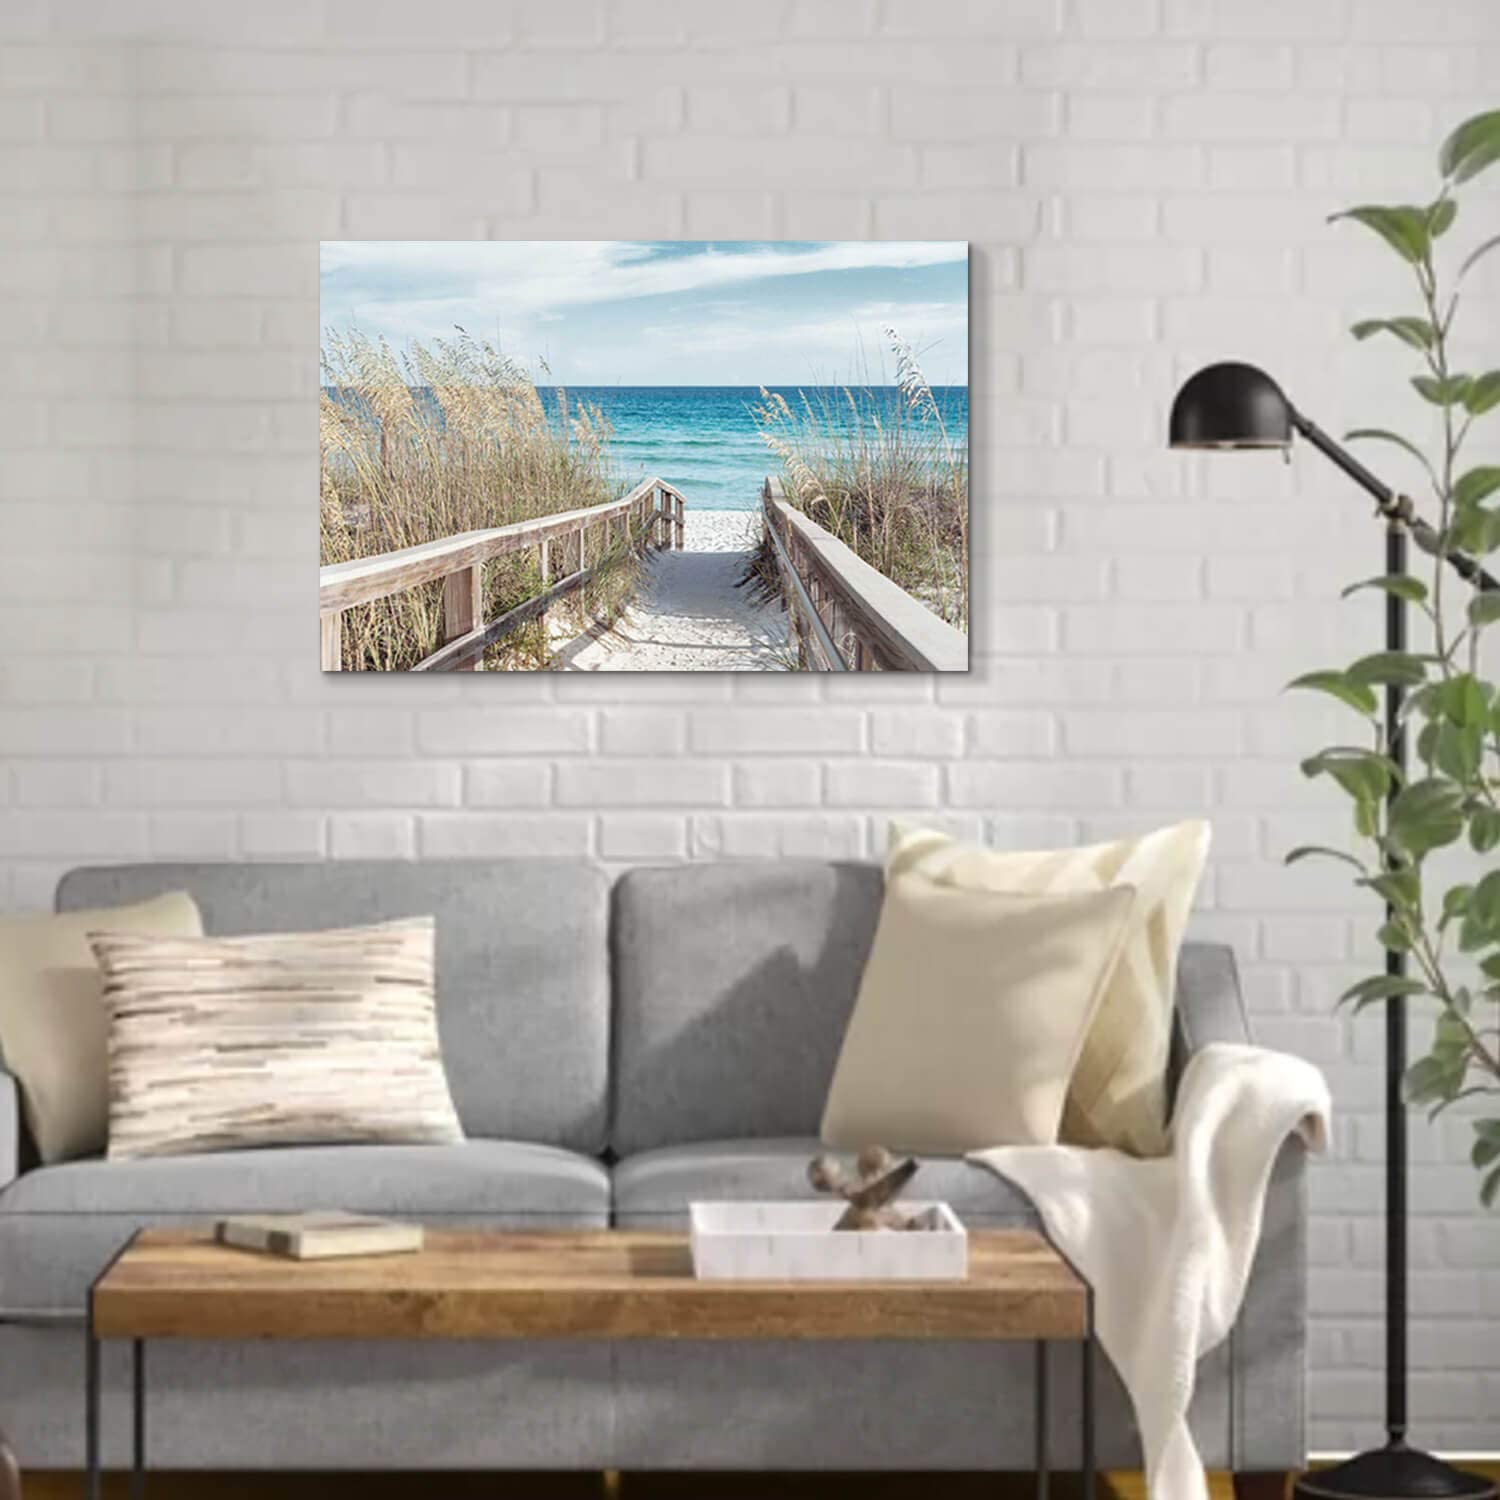 Seascape Painting Fence Pathway Picture Print on Canvas for Bedroom /… 36 x 24 x 1 Panel Beach Artwork Seaside Wall Art